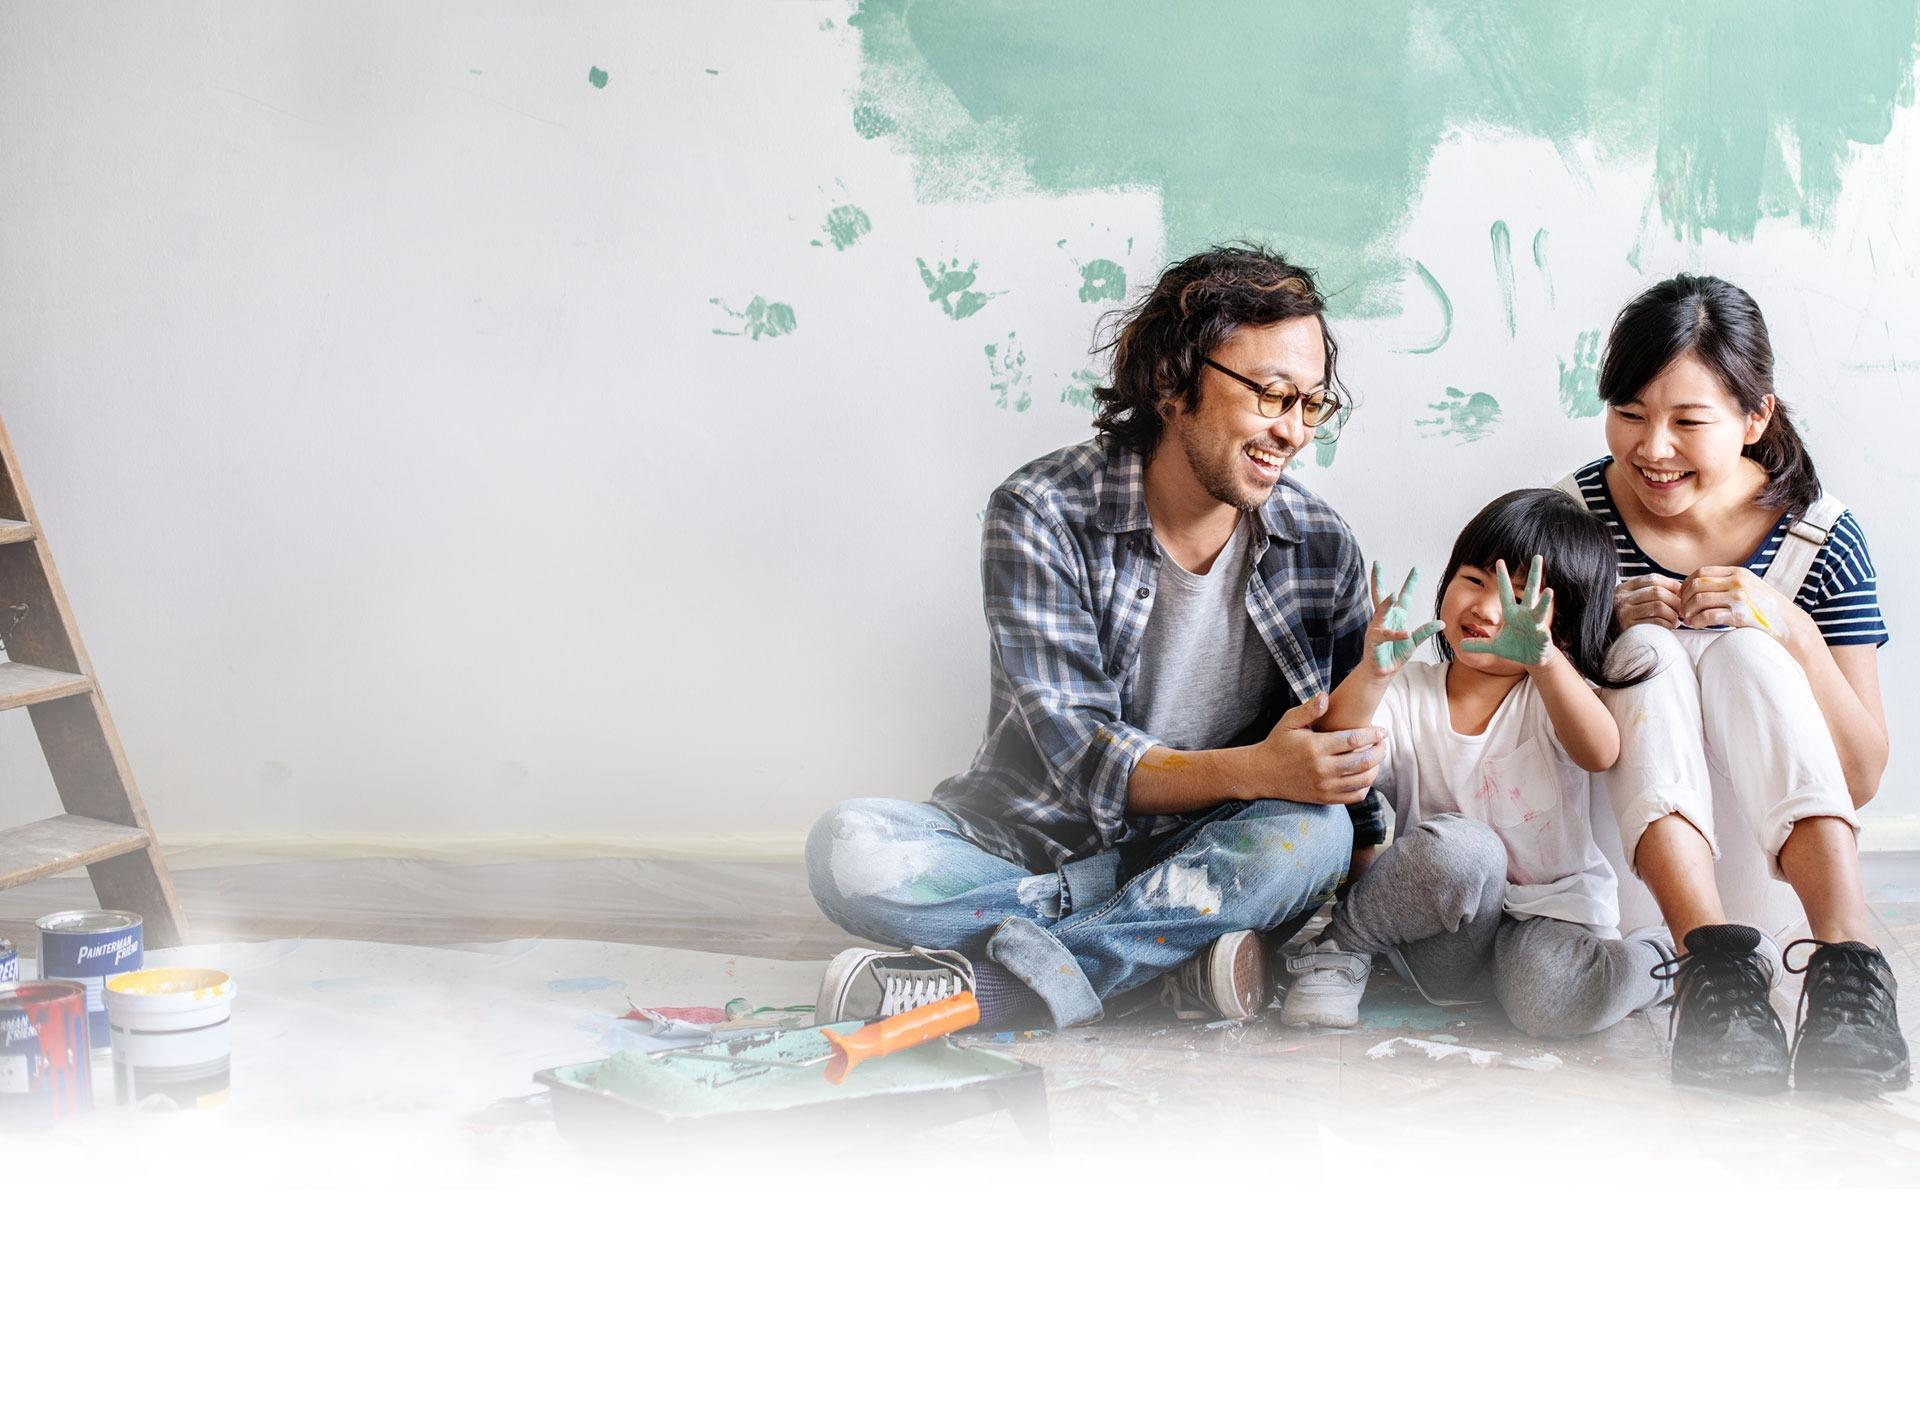 Photo of a smiling family sitting on the floor of a new home, their small child has put handprints on the wall with wet paint